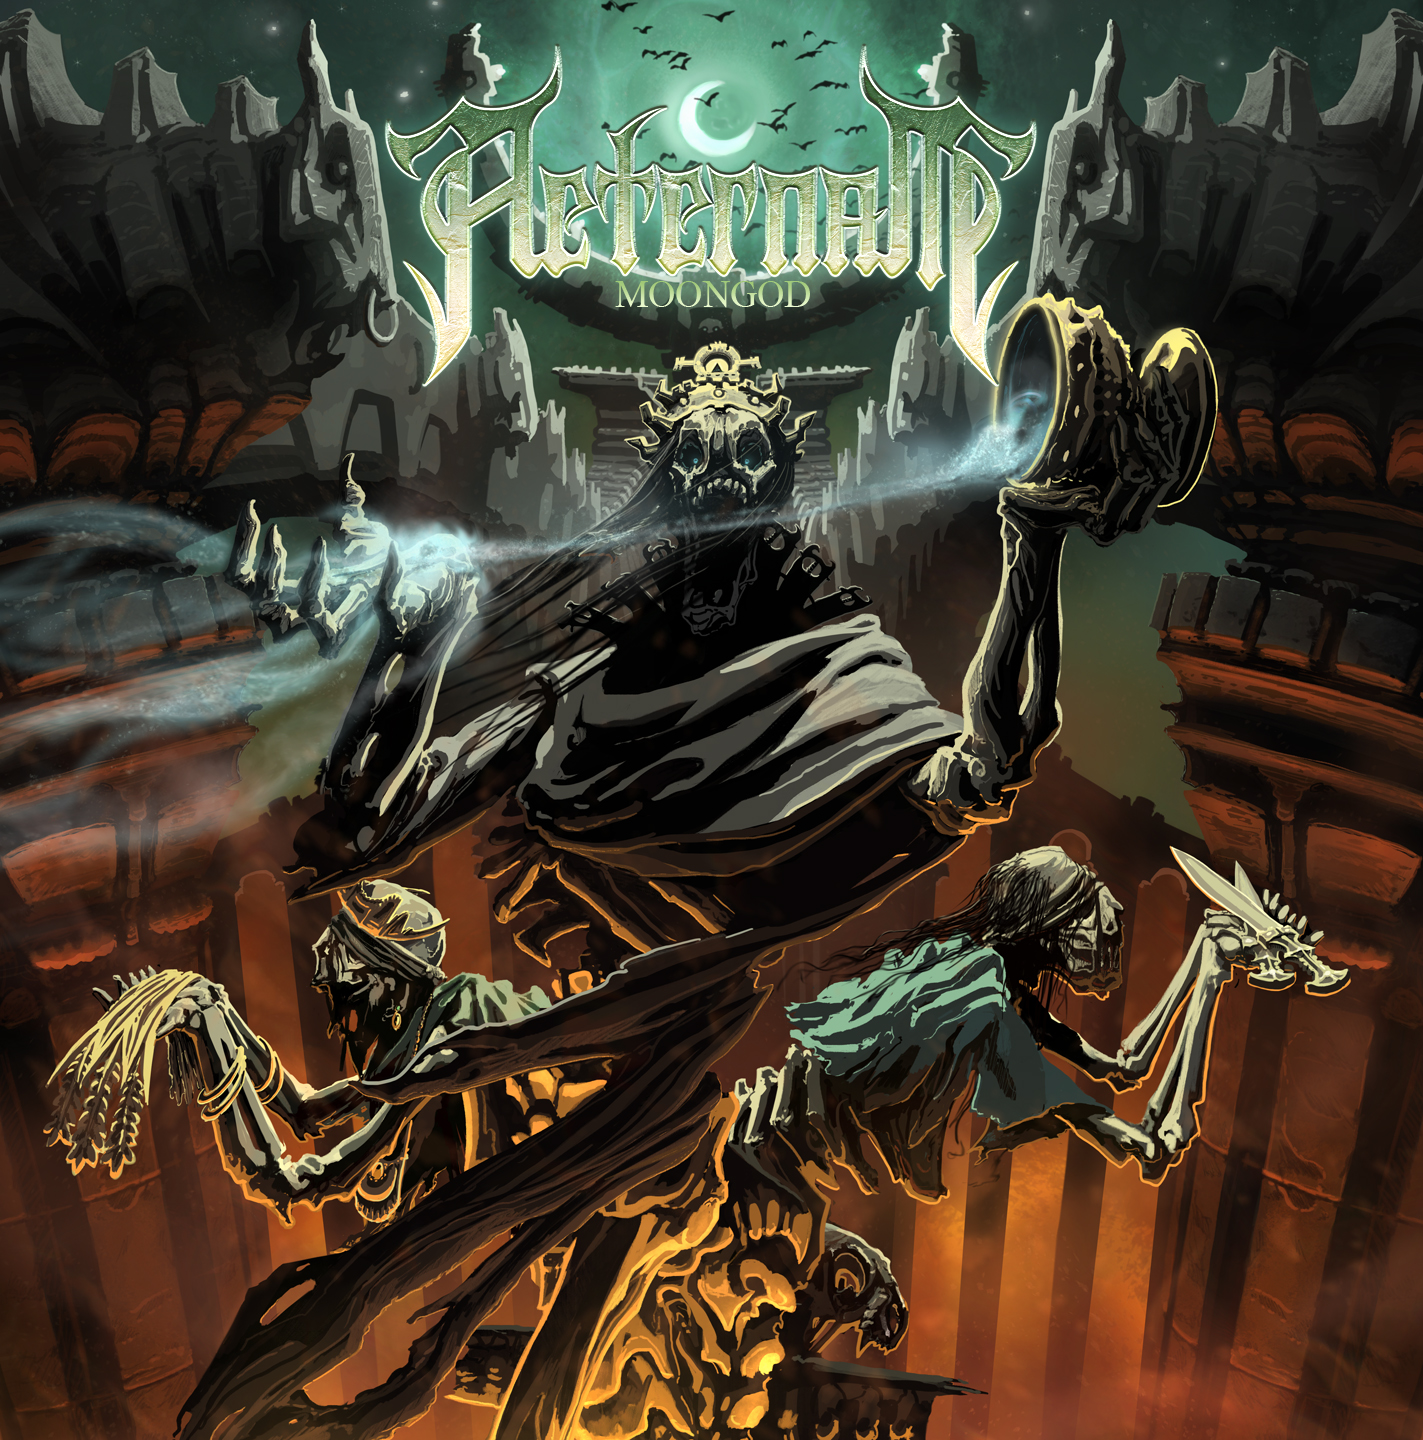 Things You Might Have Missed 2012: Aeternam – Moongod